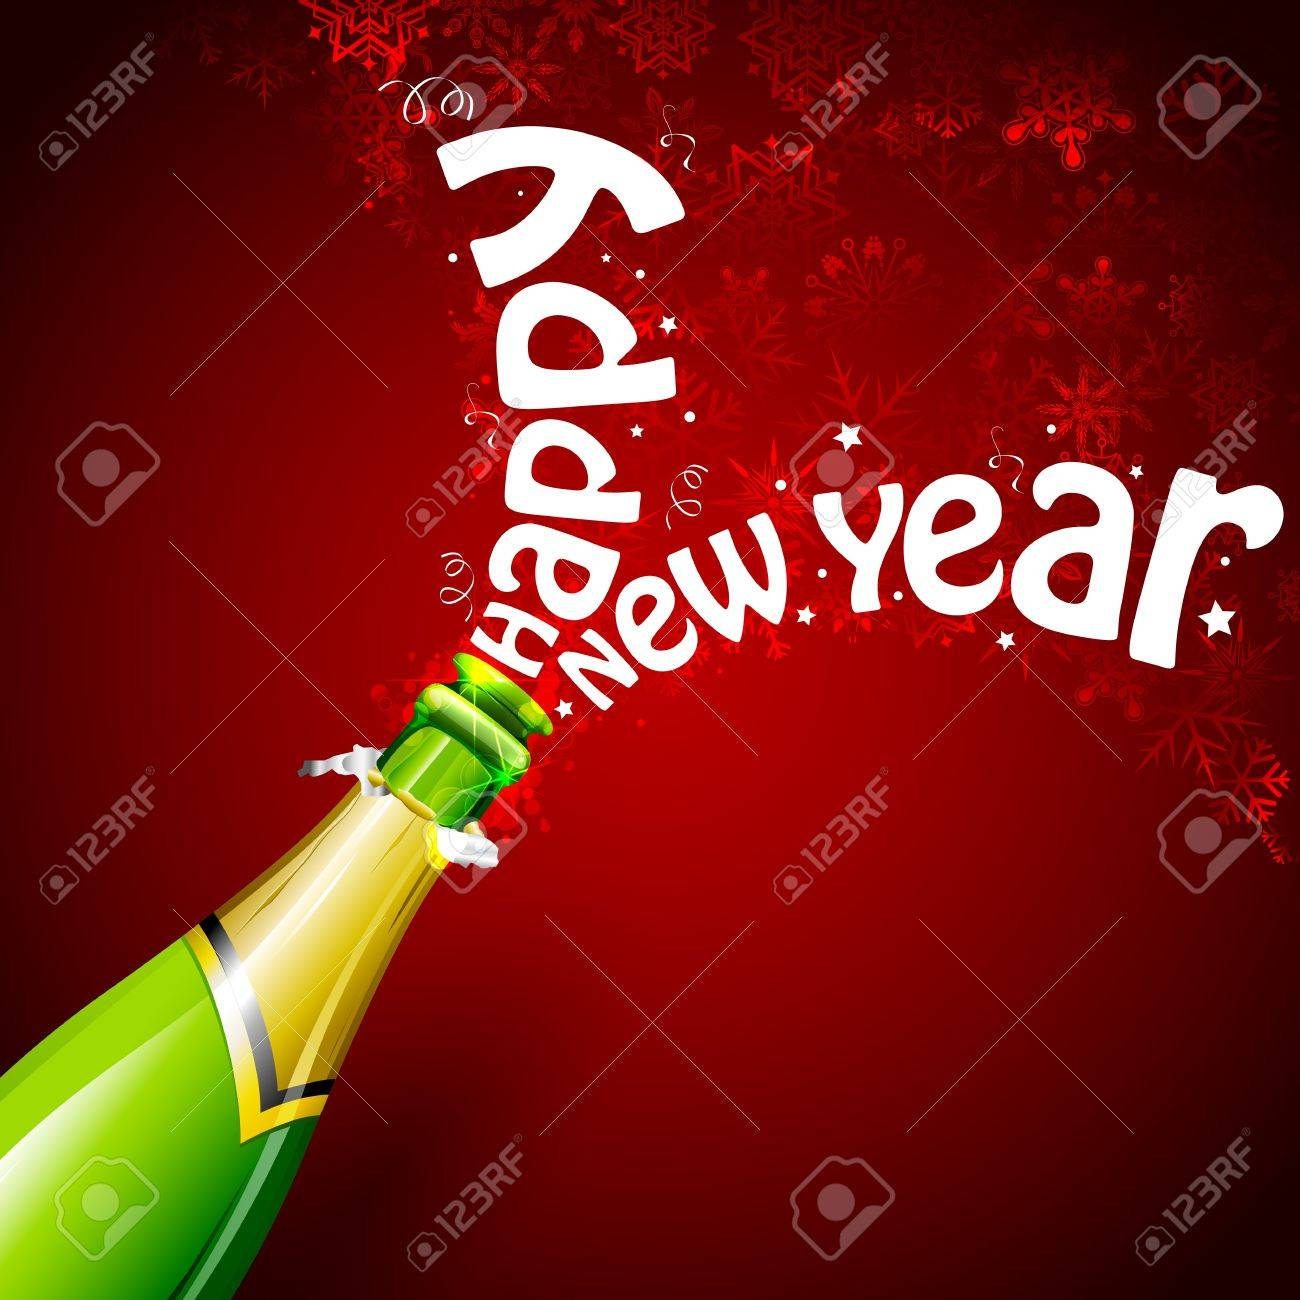 illustration of explosion of champagne bottle cork for Happy New Year celebration Stock Vector - 16125078